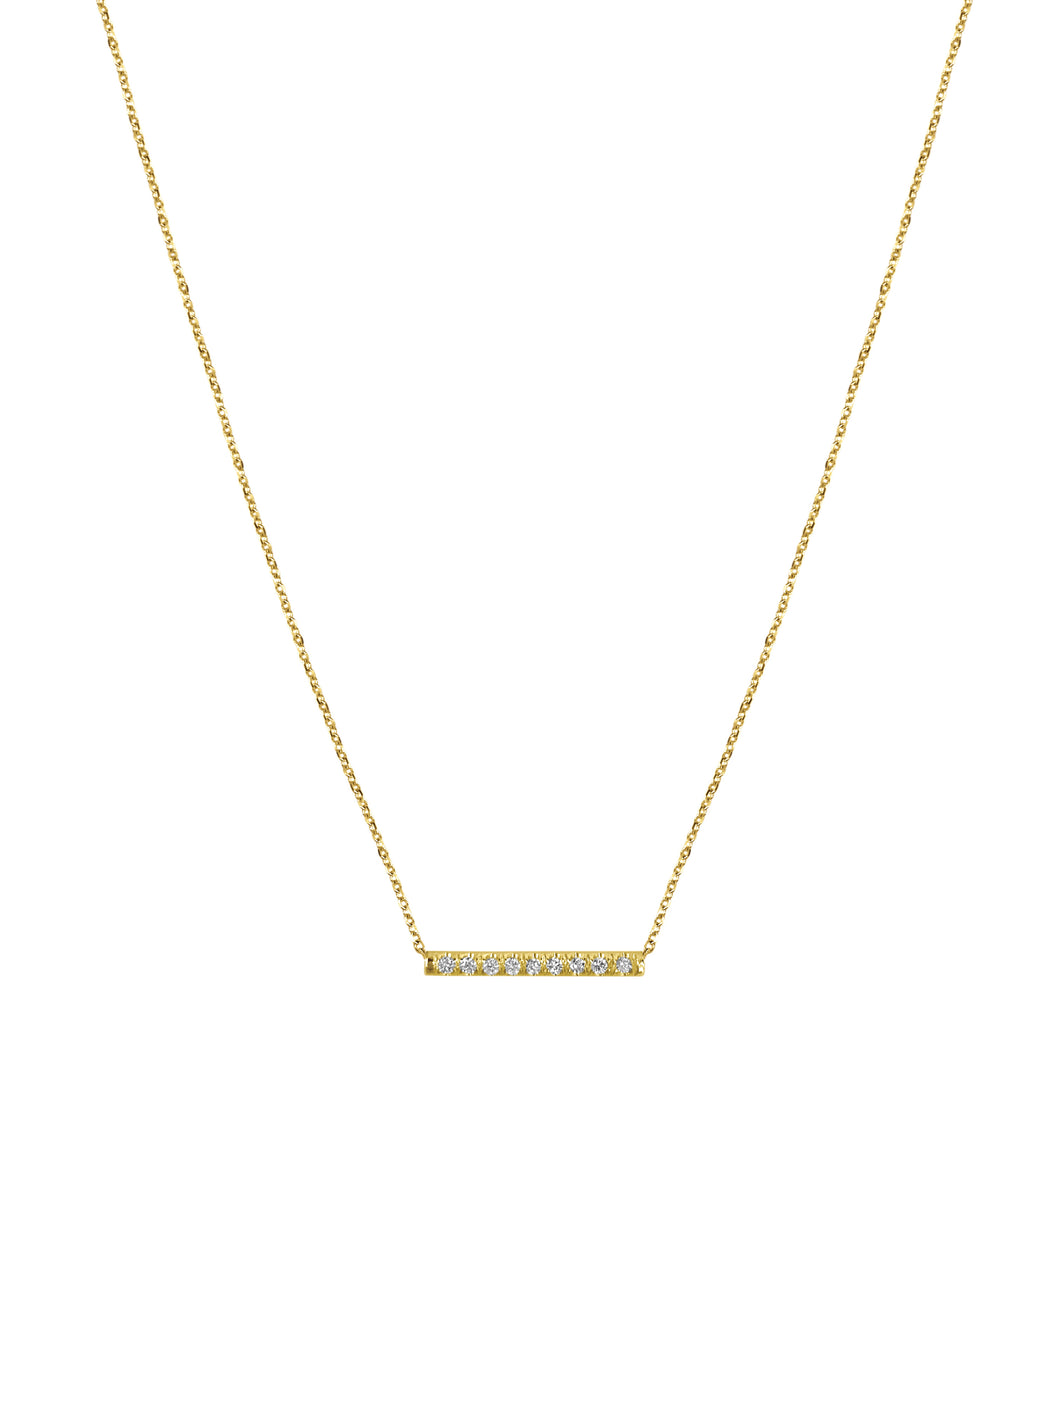 14K Gold Mini Micropave Diamond Bar Necklace